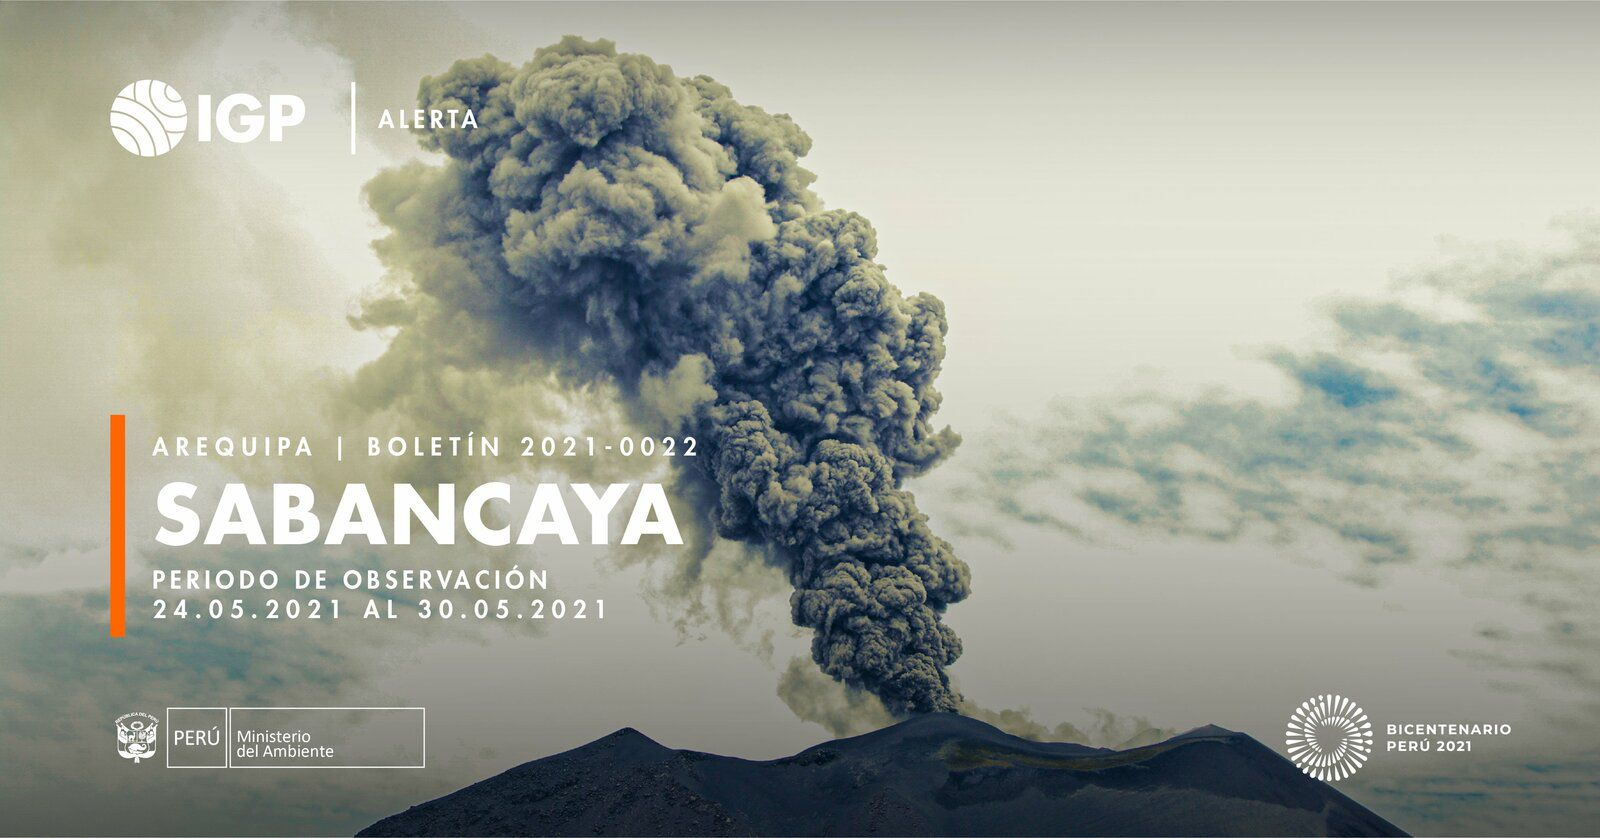 Sabancaya - activity of the week from 24 to 30.05.2021 - Doc. I.G. Peru